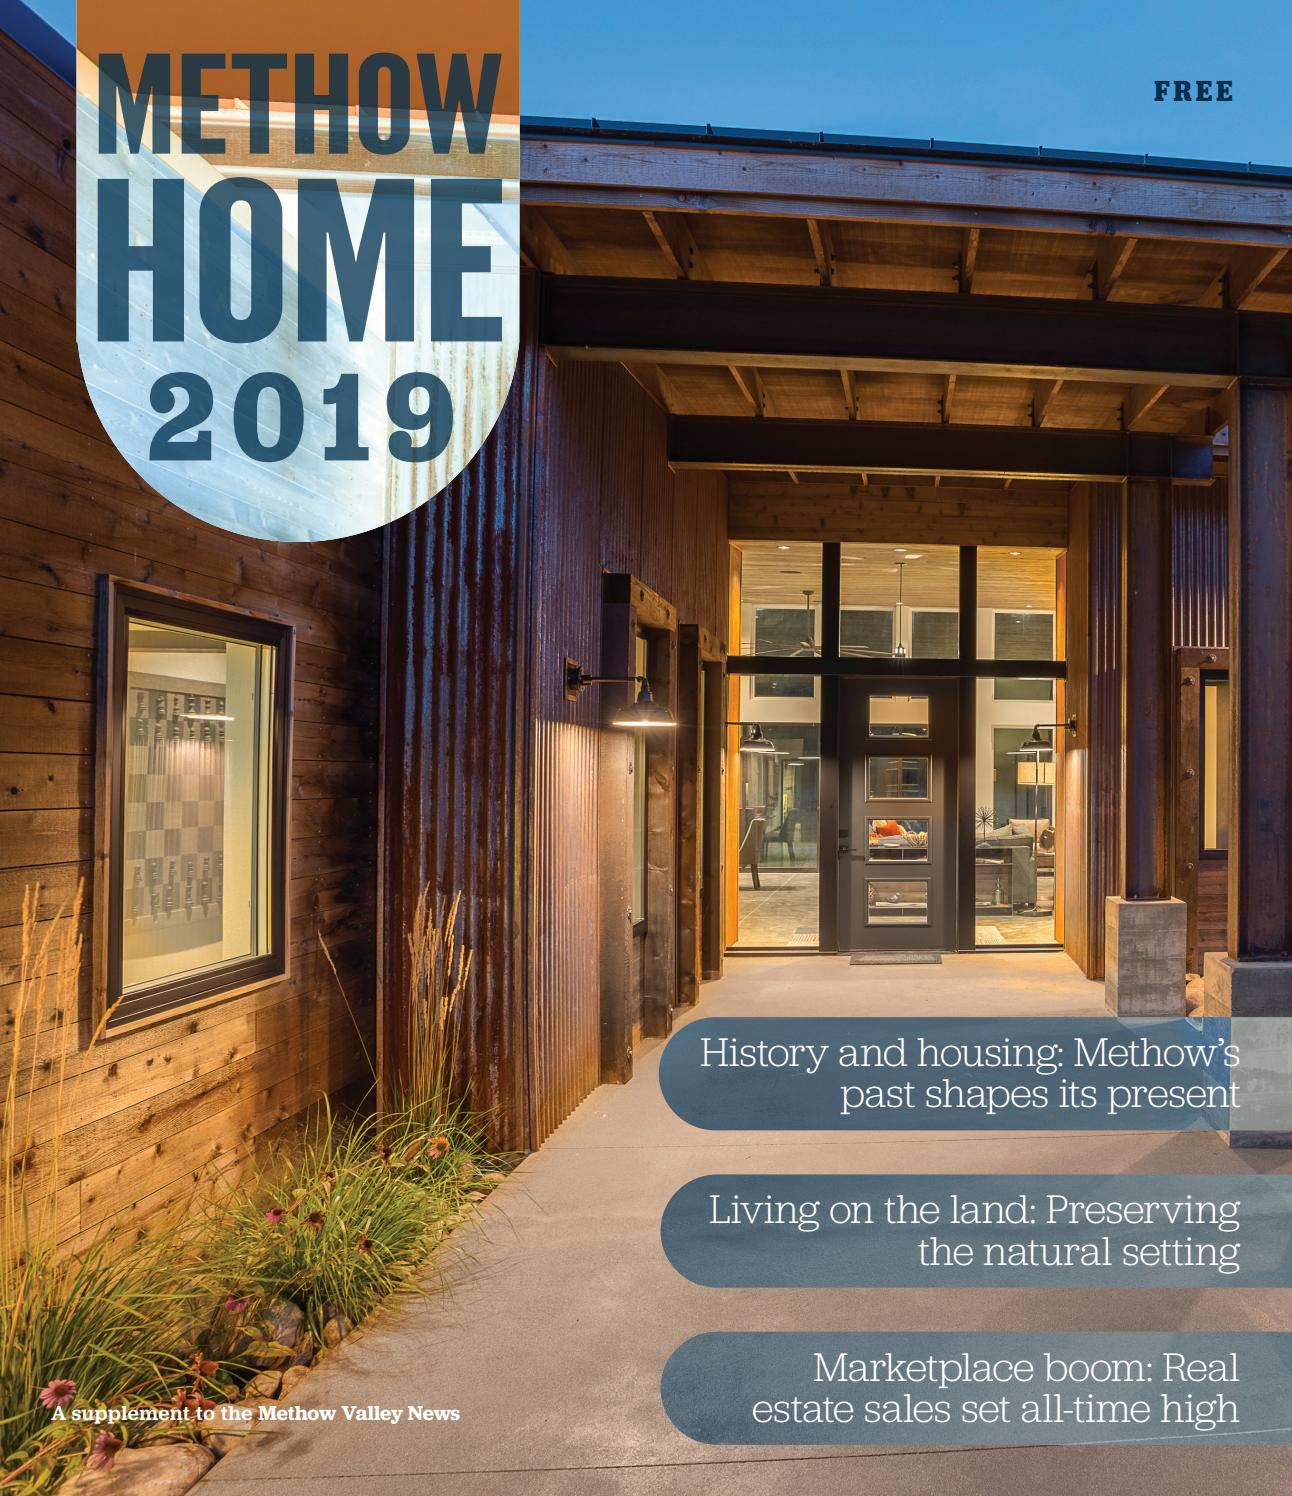 2019 Methow Home by Methow Valley News - issuu